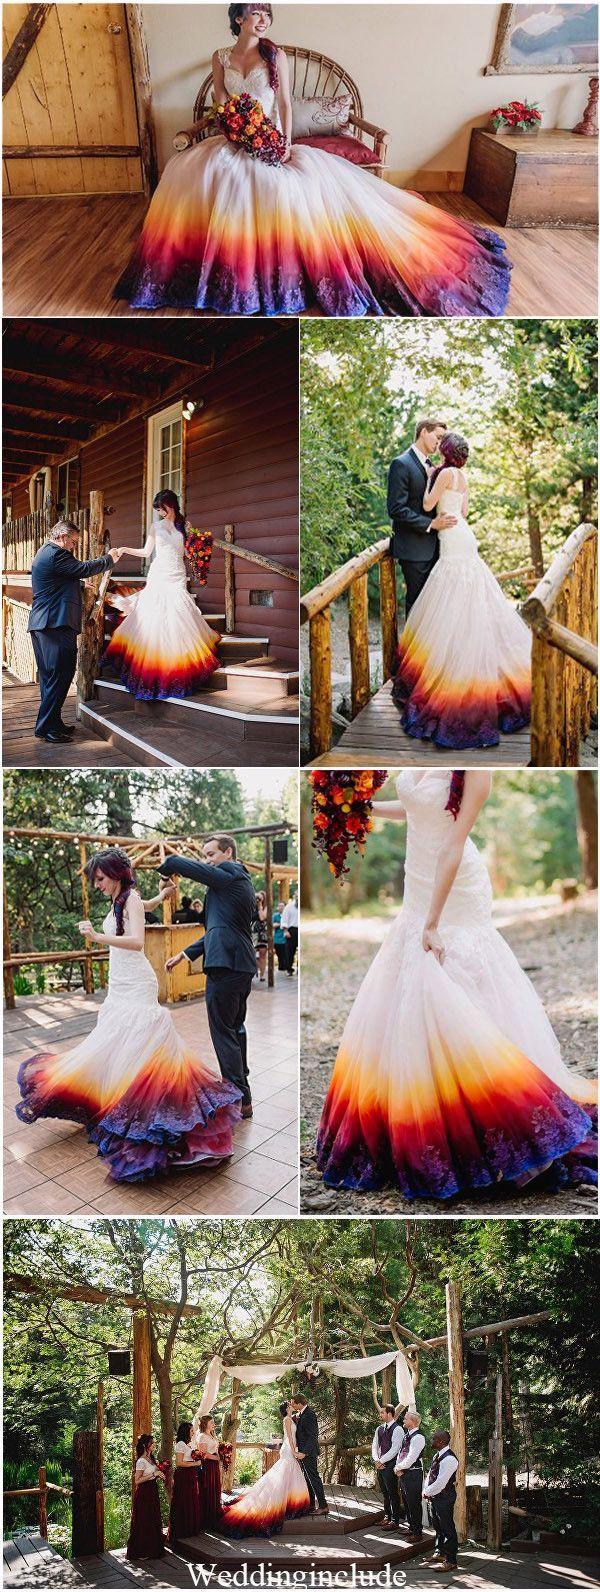 Bad wedding dresses  Dip Dye Wedding Dress Trend Will Make Your Big Day More Colorful